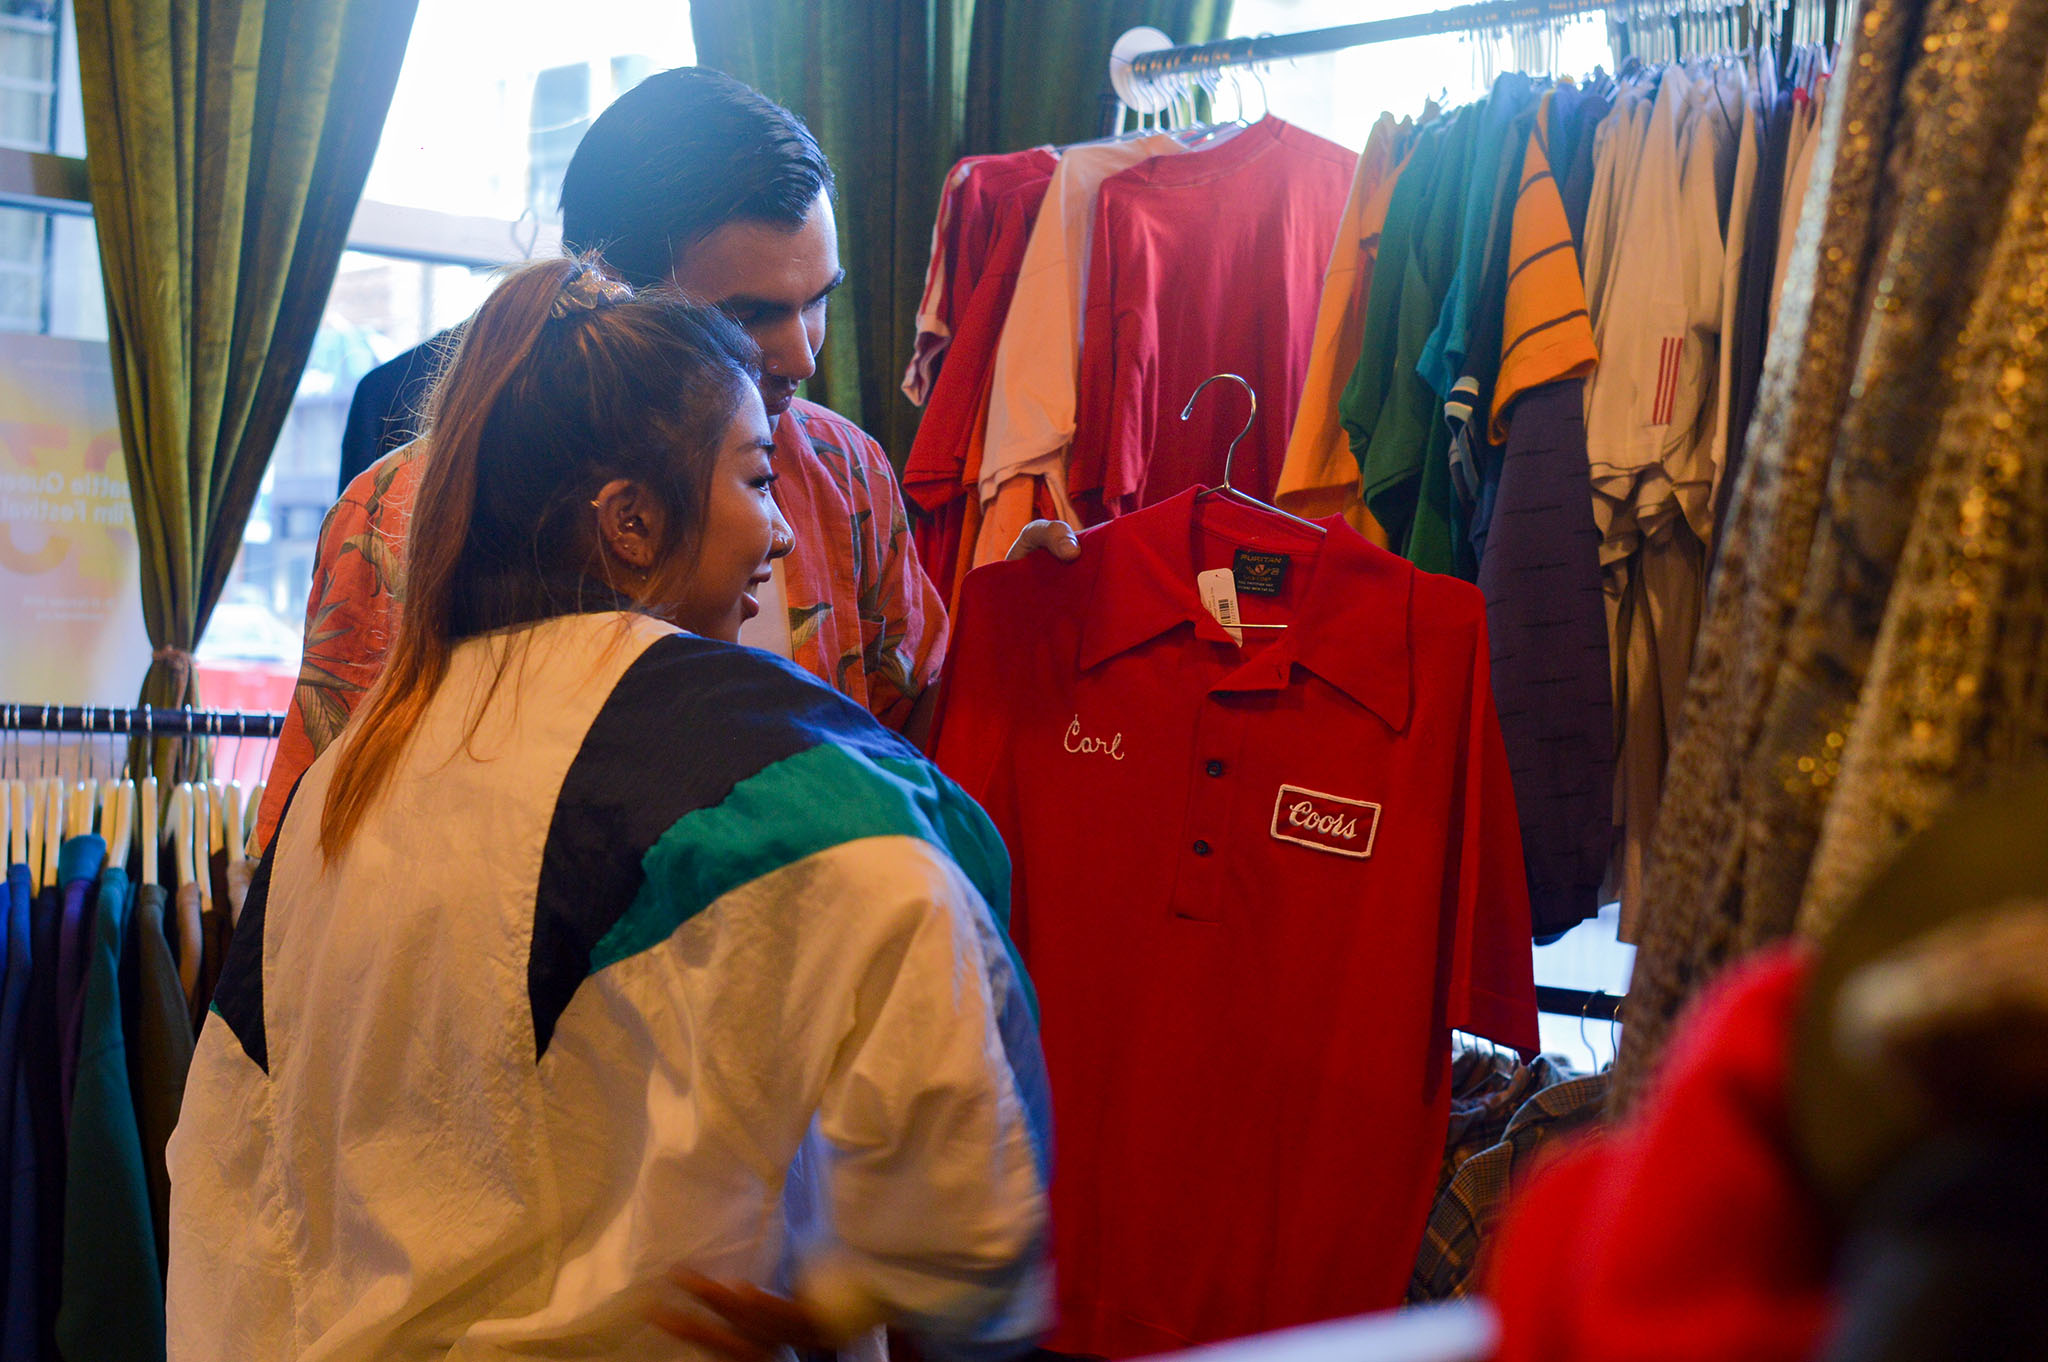 Renee Soliman and Andrew Manley search through racks of funky, affordable pieces in one of Capitol Hill's many local thrift stores.